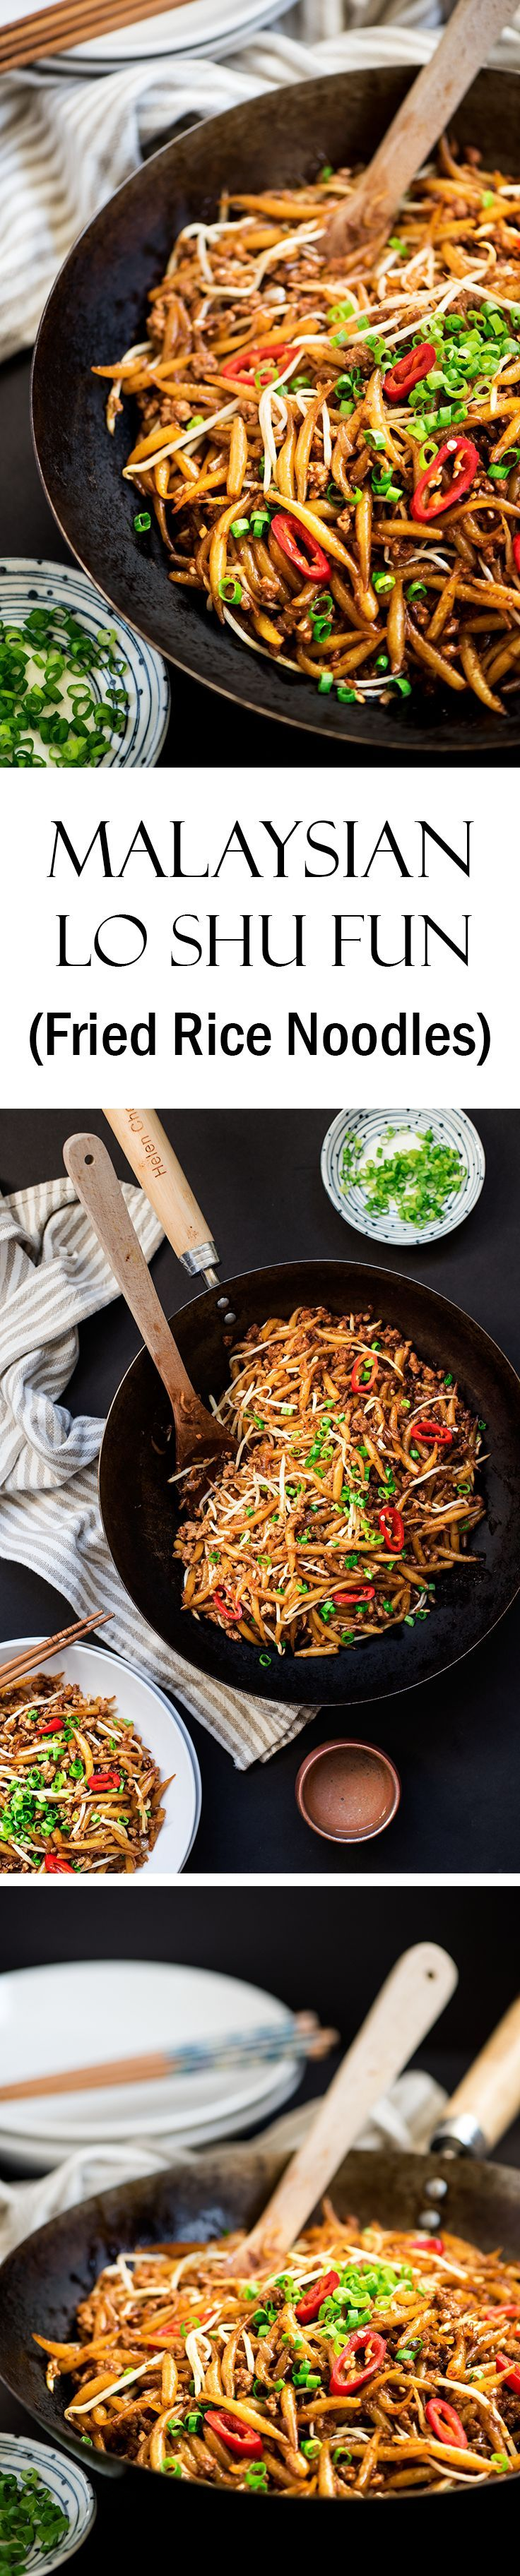 325 best malaysian food images on pinterest cooking recipes asia malaysian lo shu fun fried rice noodles malaysian recipesmalaysian cuisinemalaysian forumfinder Choice Image